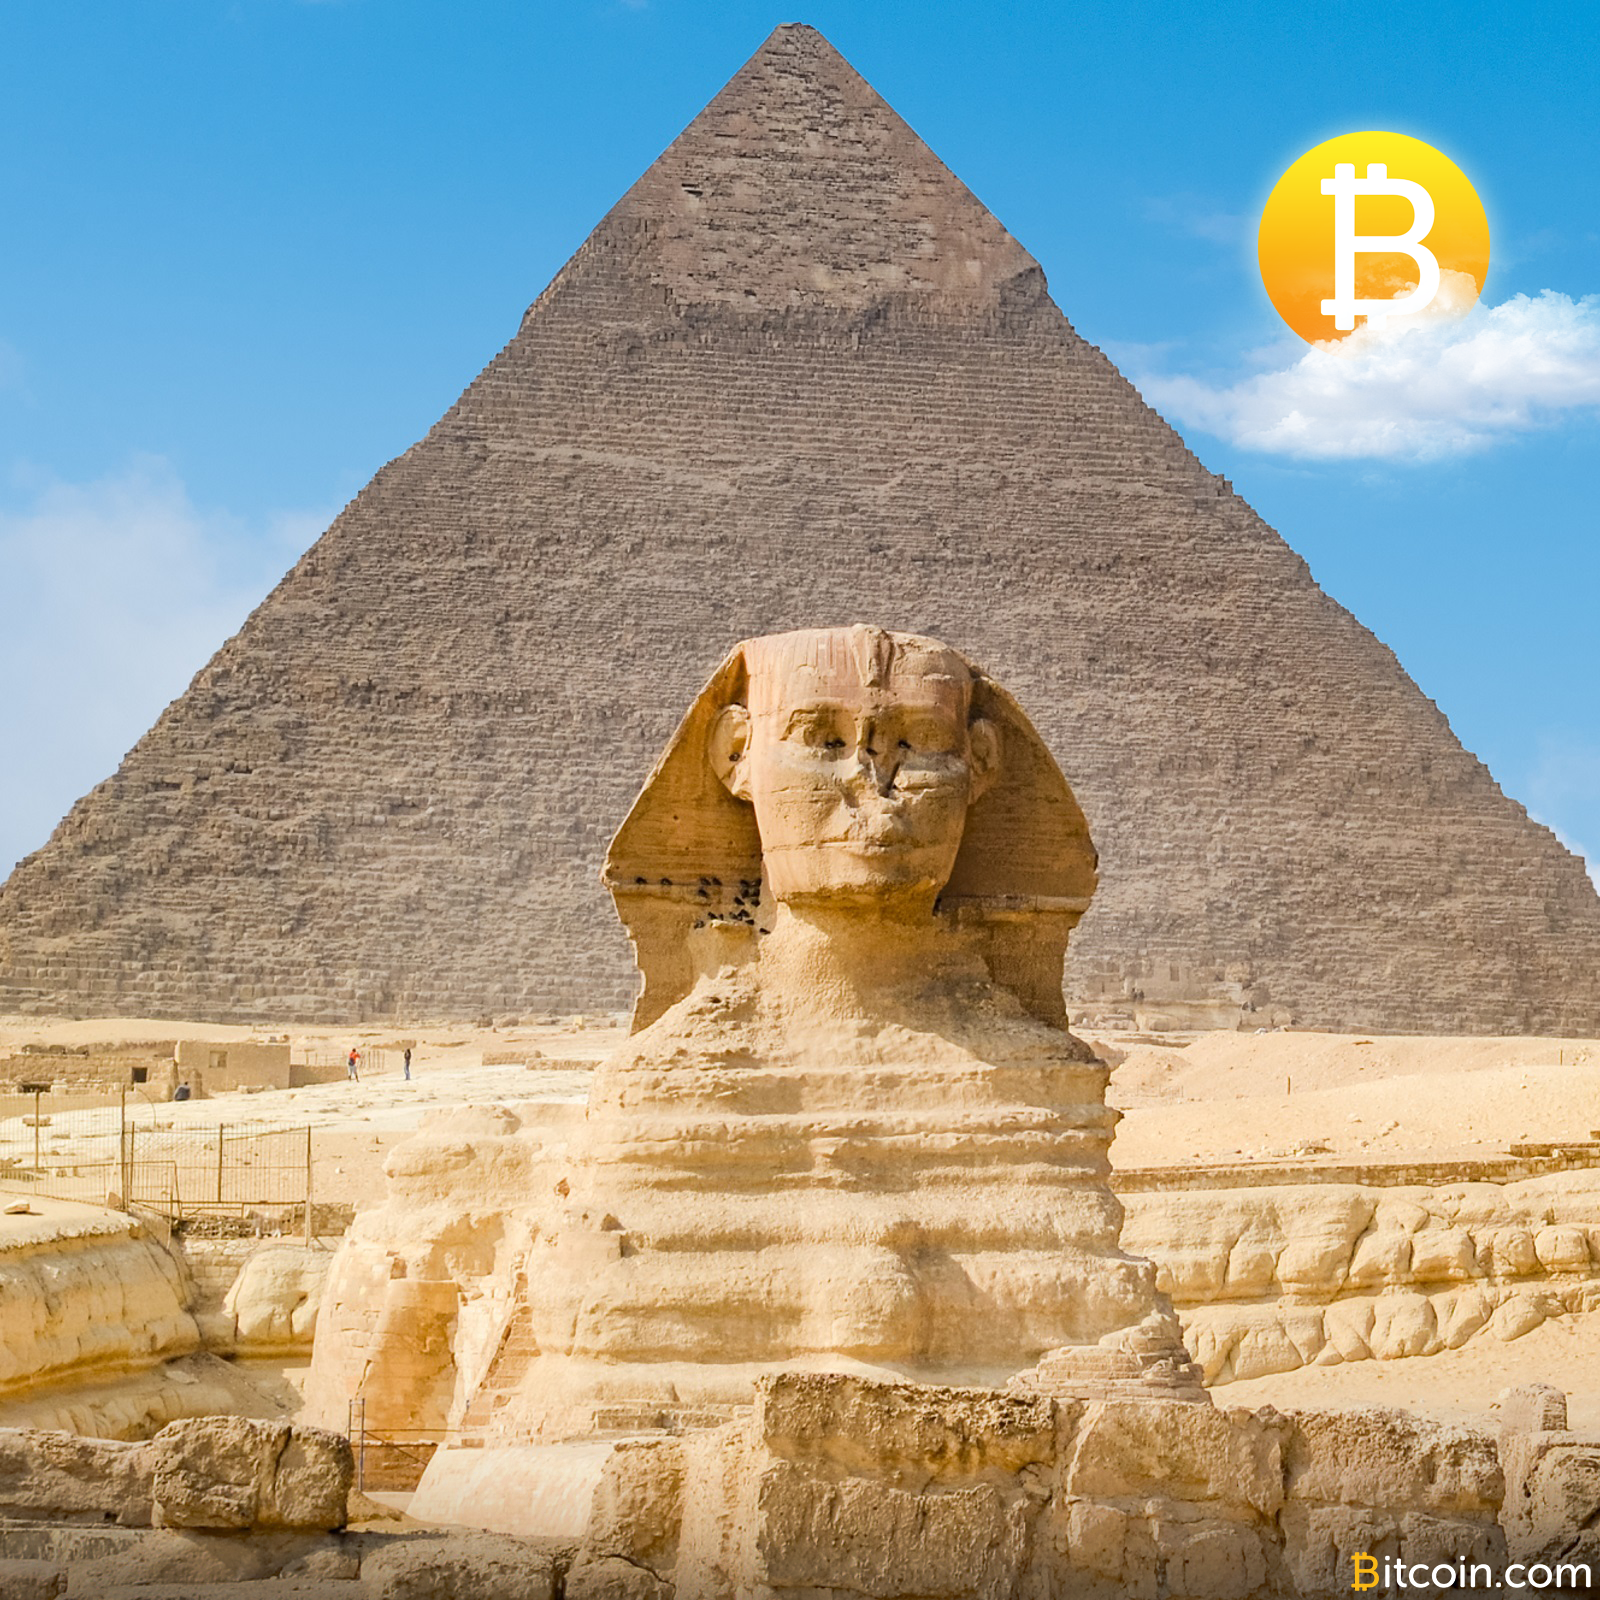 First Bitcoin Exchange Launching in Egypt - Bitcoin News